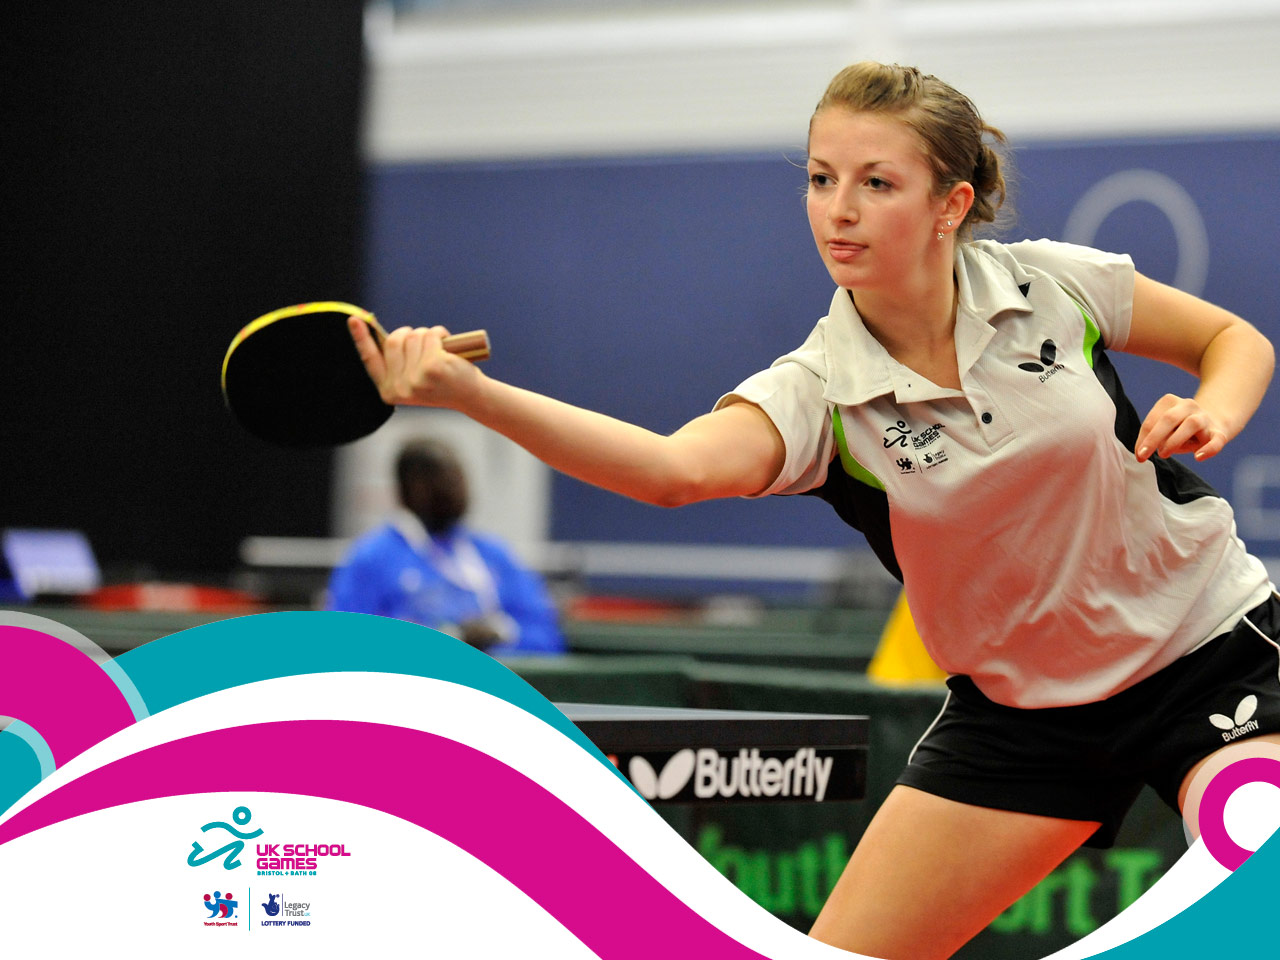 an introduction to the sport of table tennis It shall abide by the relevant rules and regulations of the international table tennis federation, serve to unify, coordinate and develop table tennis as a sport country wide, make the sport more attractive to the general public so that fresh talent is drawn into the game.